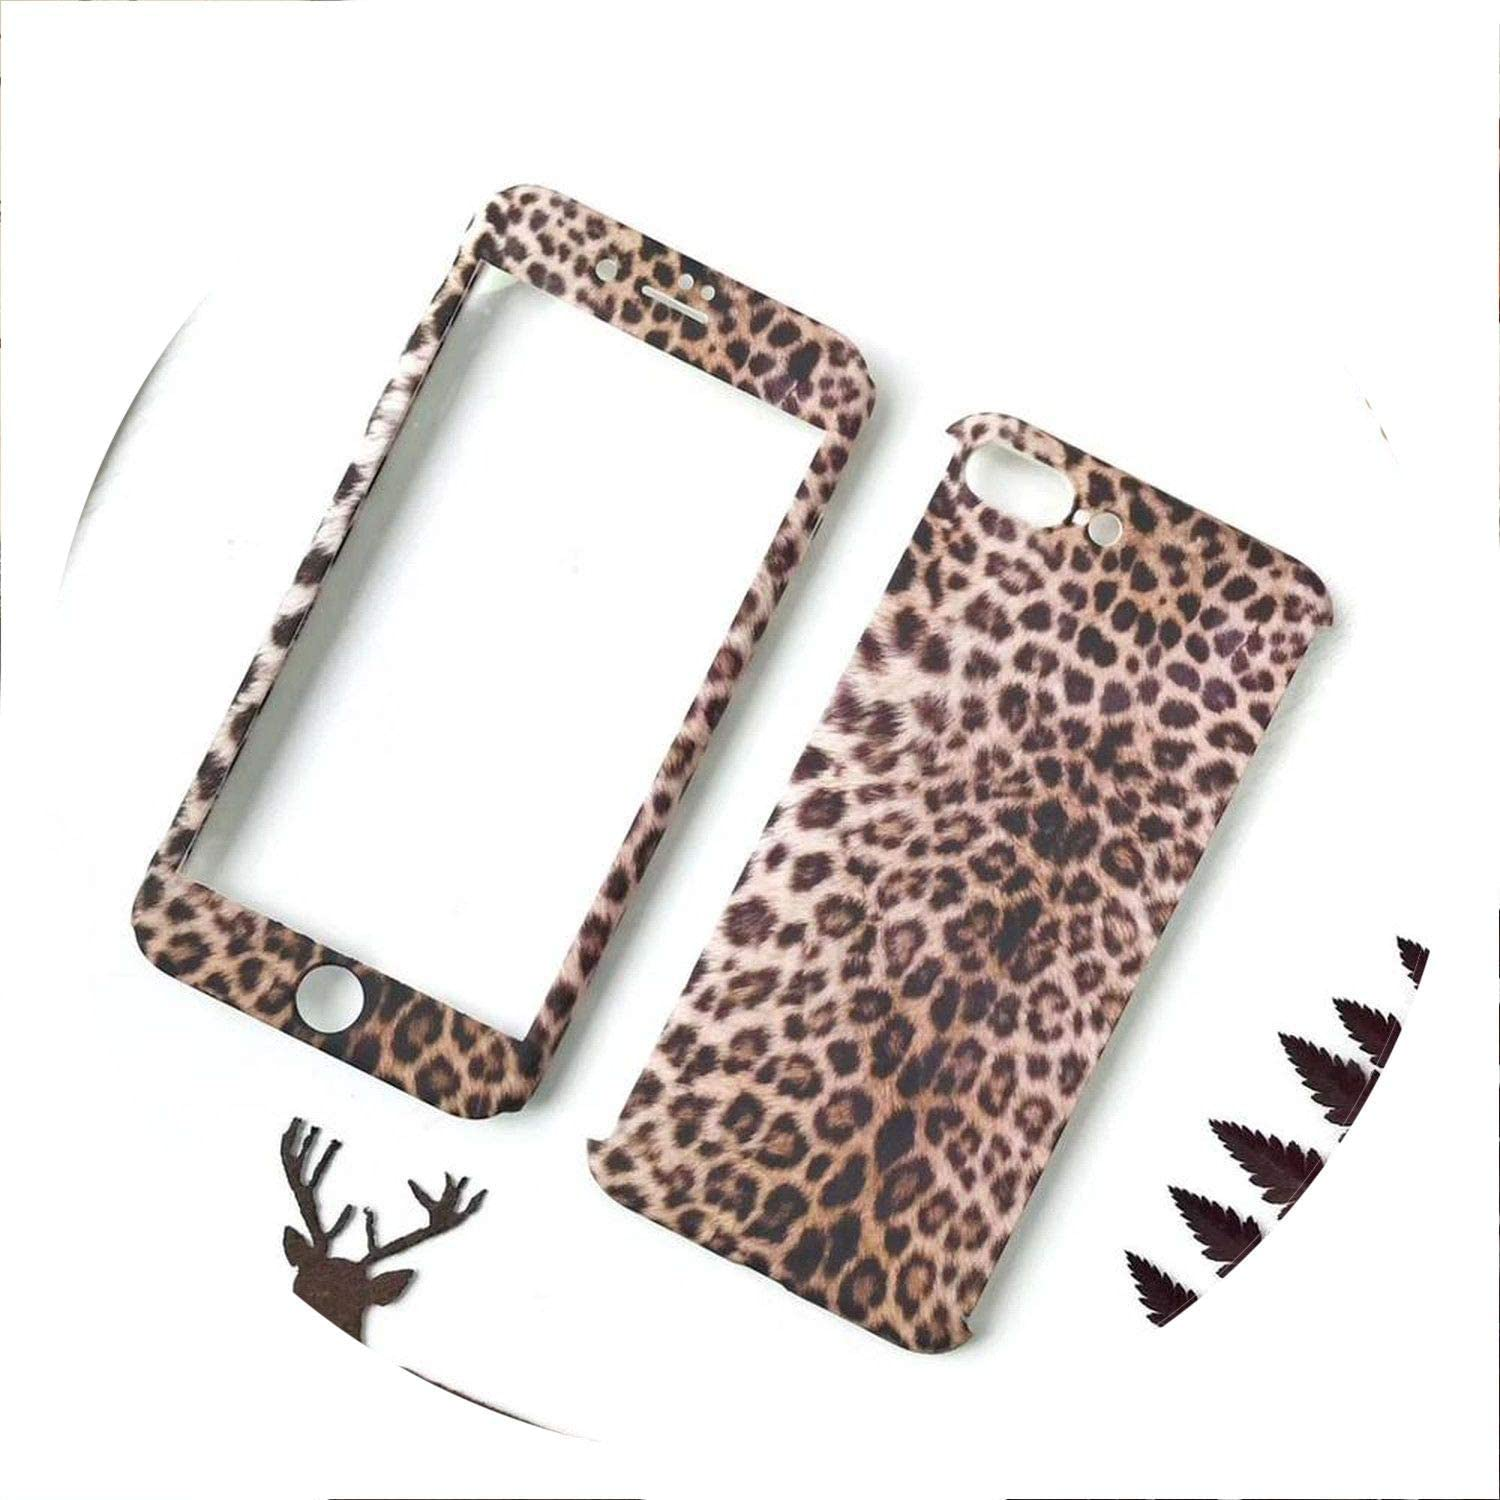 360 Full Body Leopard Phone Cases for iPhone 7 6 6S 8 Plus 5 5S SE Hard PC Back Cover Case for iPhone X XS MAX XR Tempered Glass,style02,for iPhone X